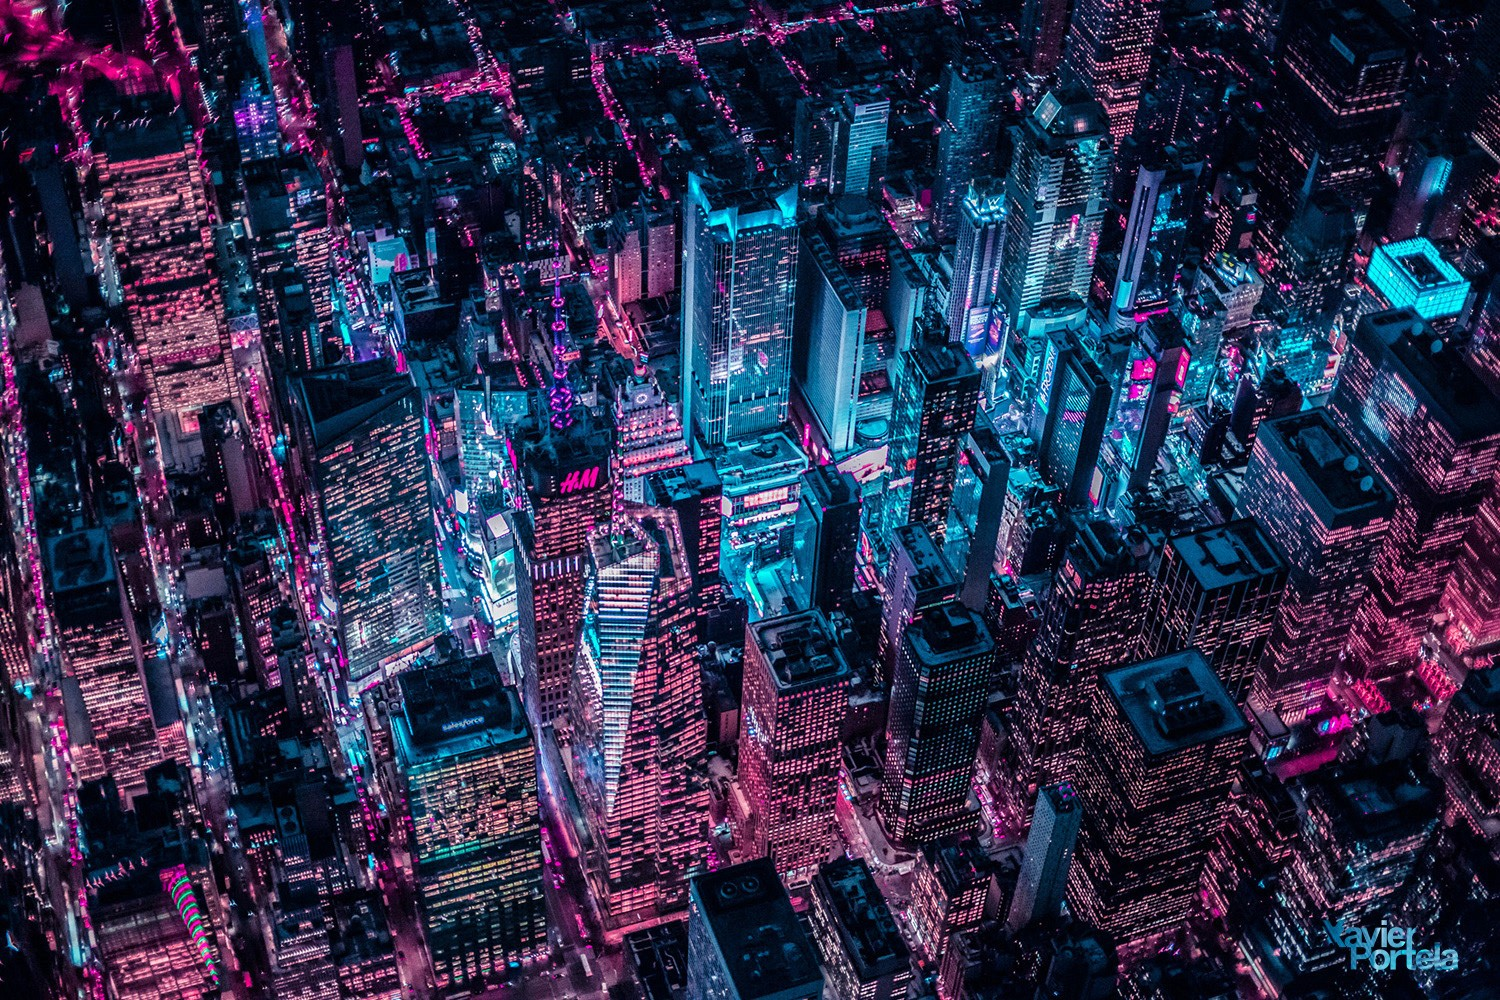 Aerial Explorations of International Cityscapes Washed in a Neon Glow by Xavier Portela